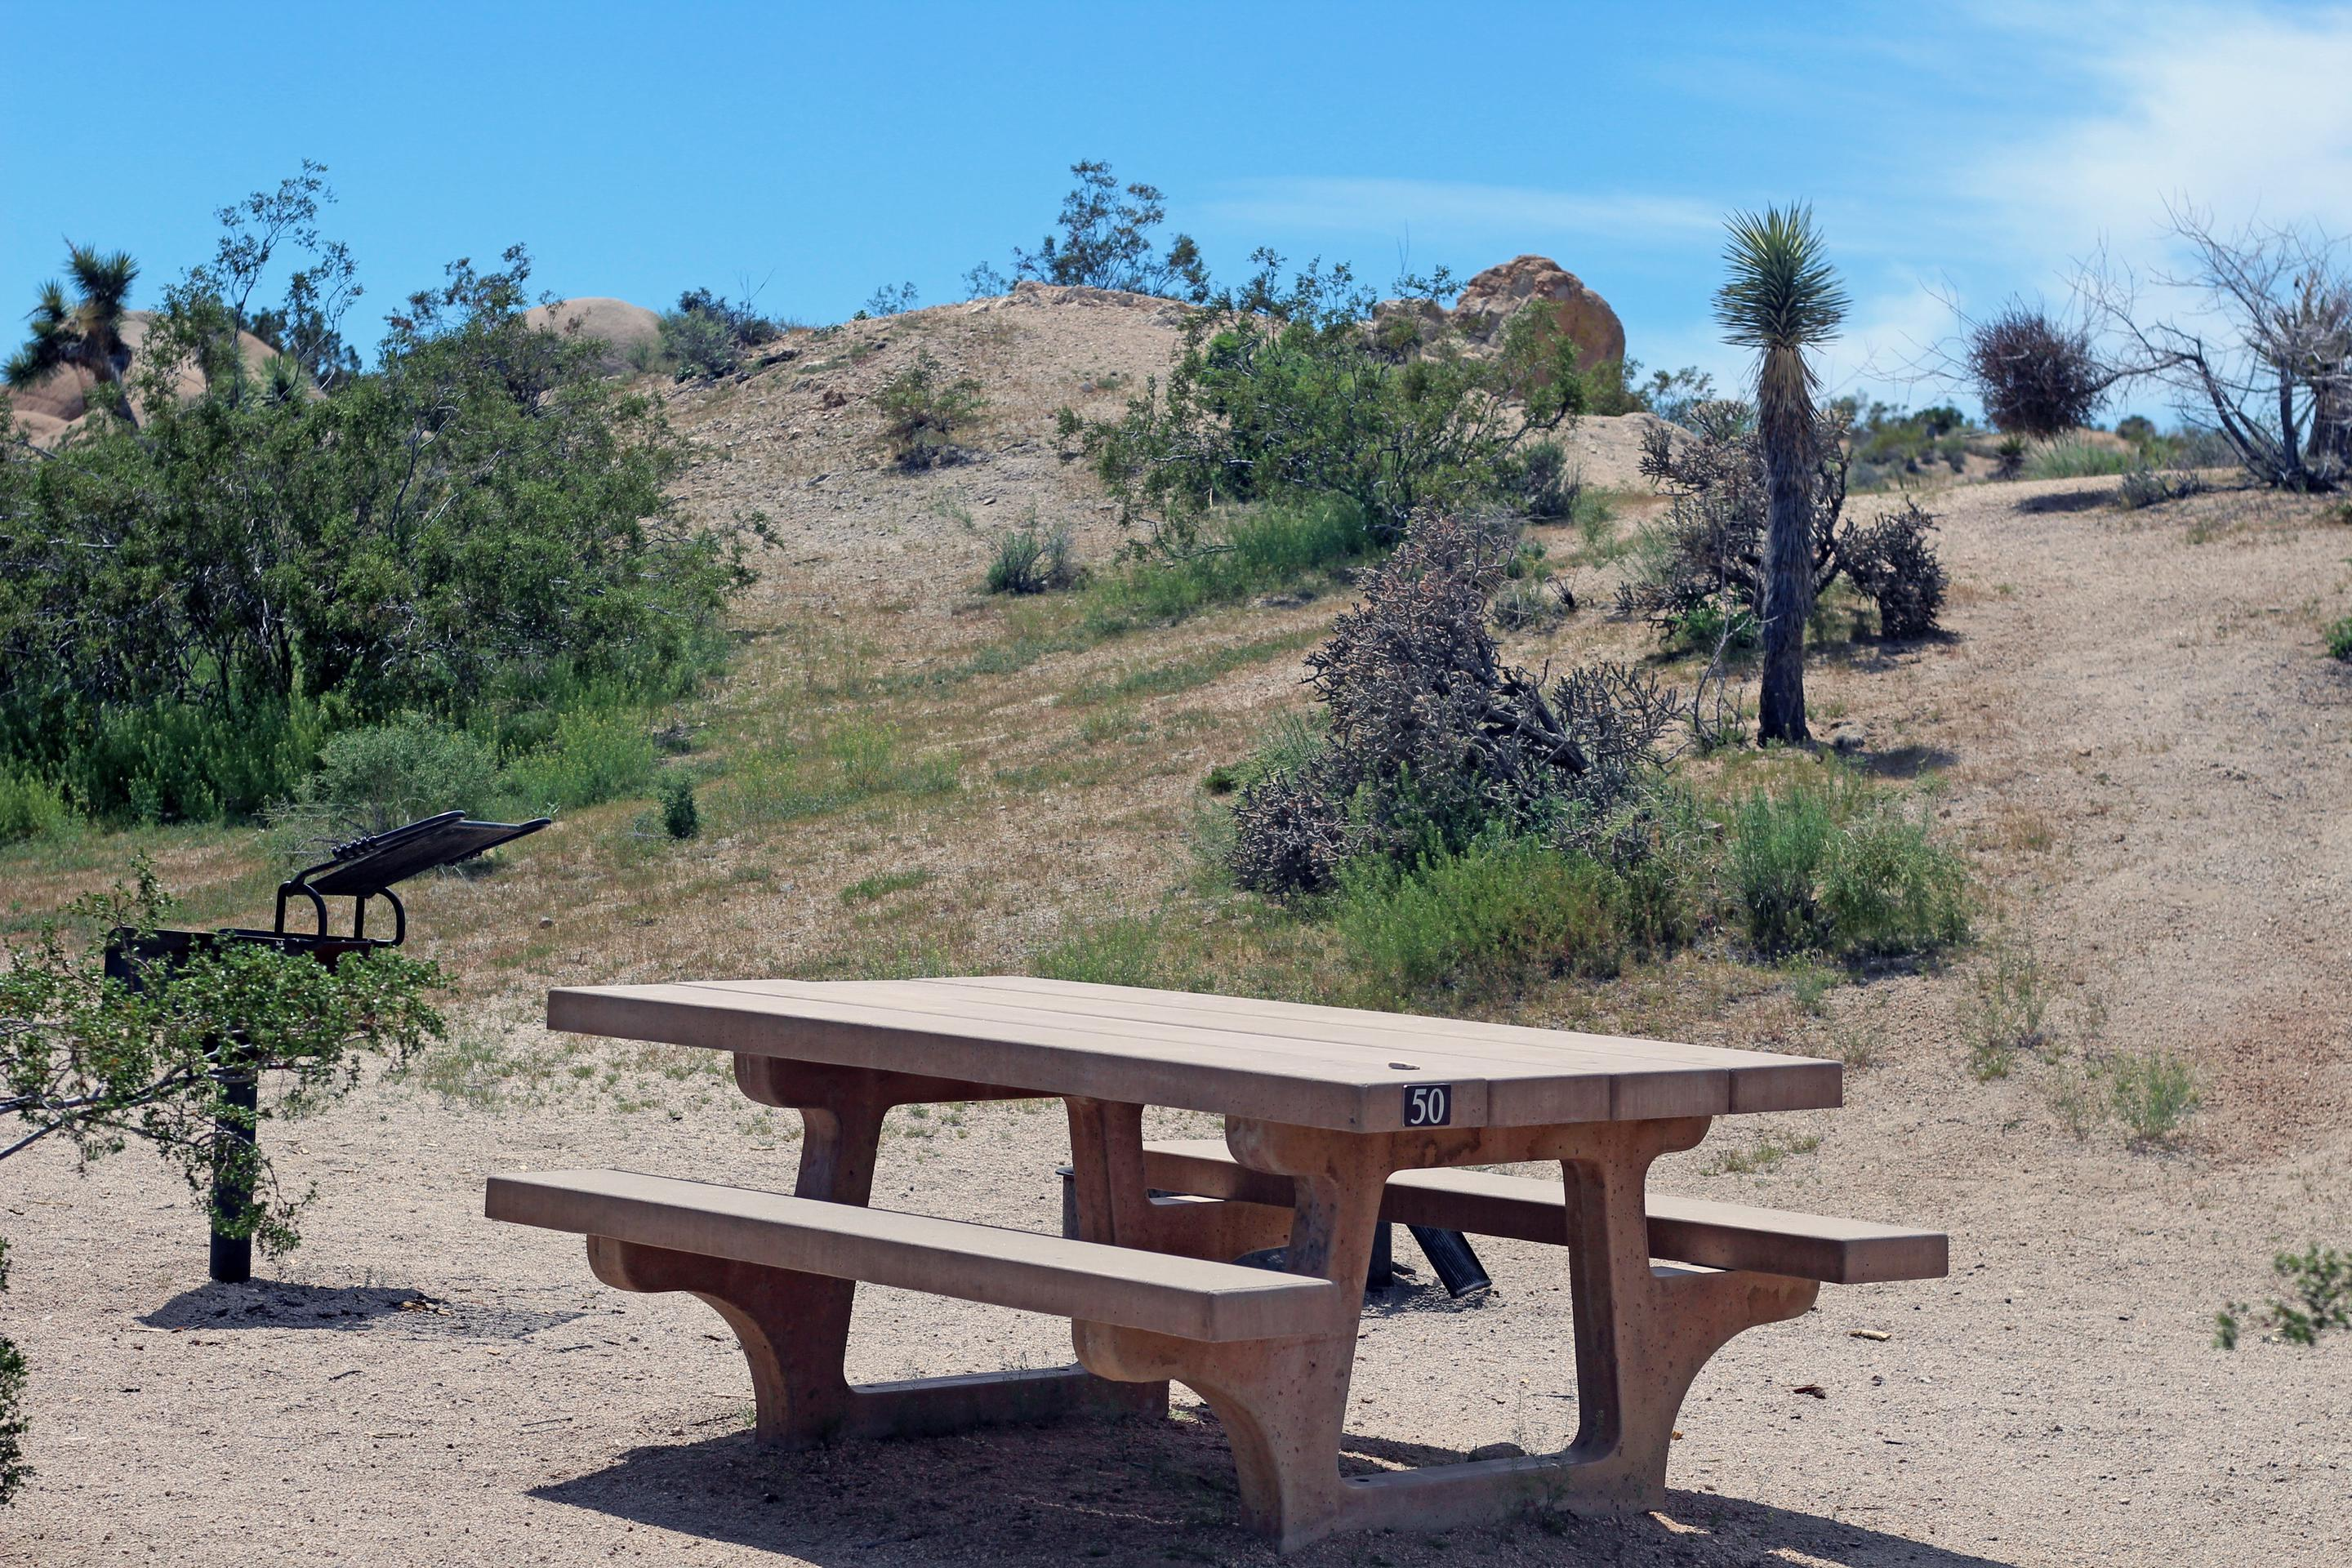 Campsite  with picnic table surrounded by gentle rise and green plants.Campsite.